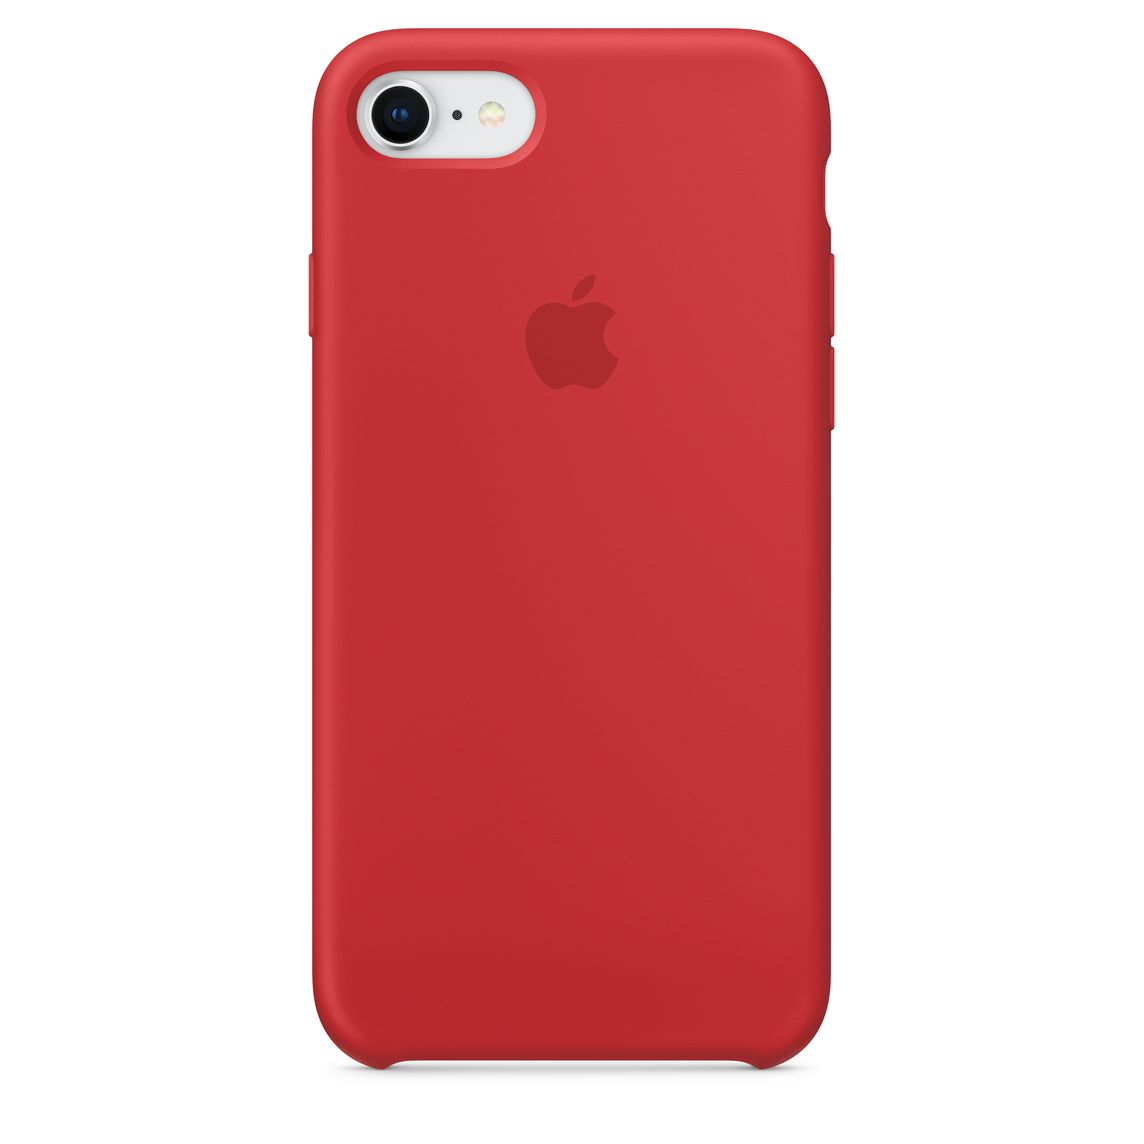 premium selection df2b5 c2113 iPhone 8 / 7 Silicone Case - (PRODUCT)RED